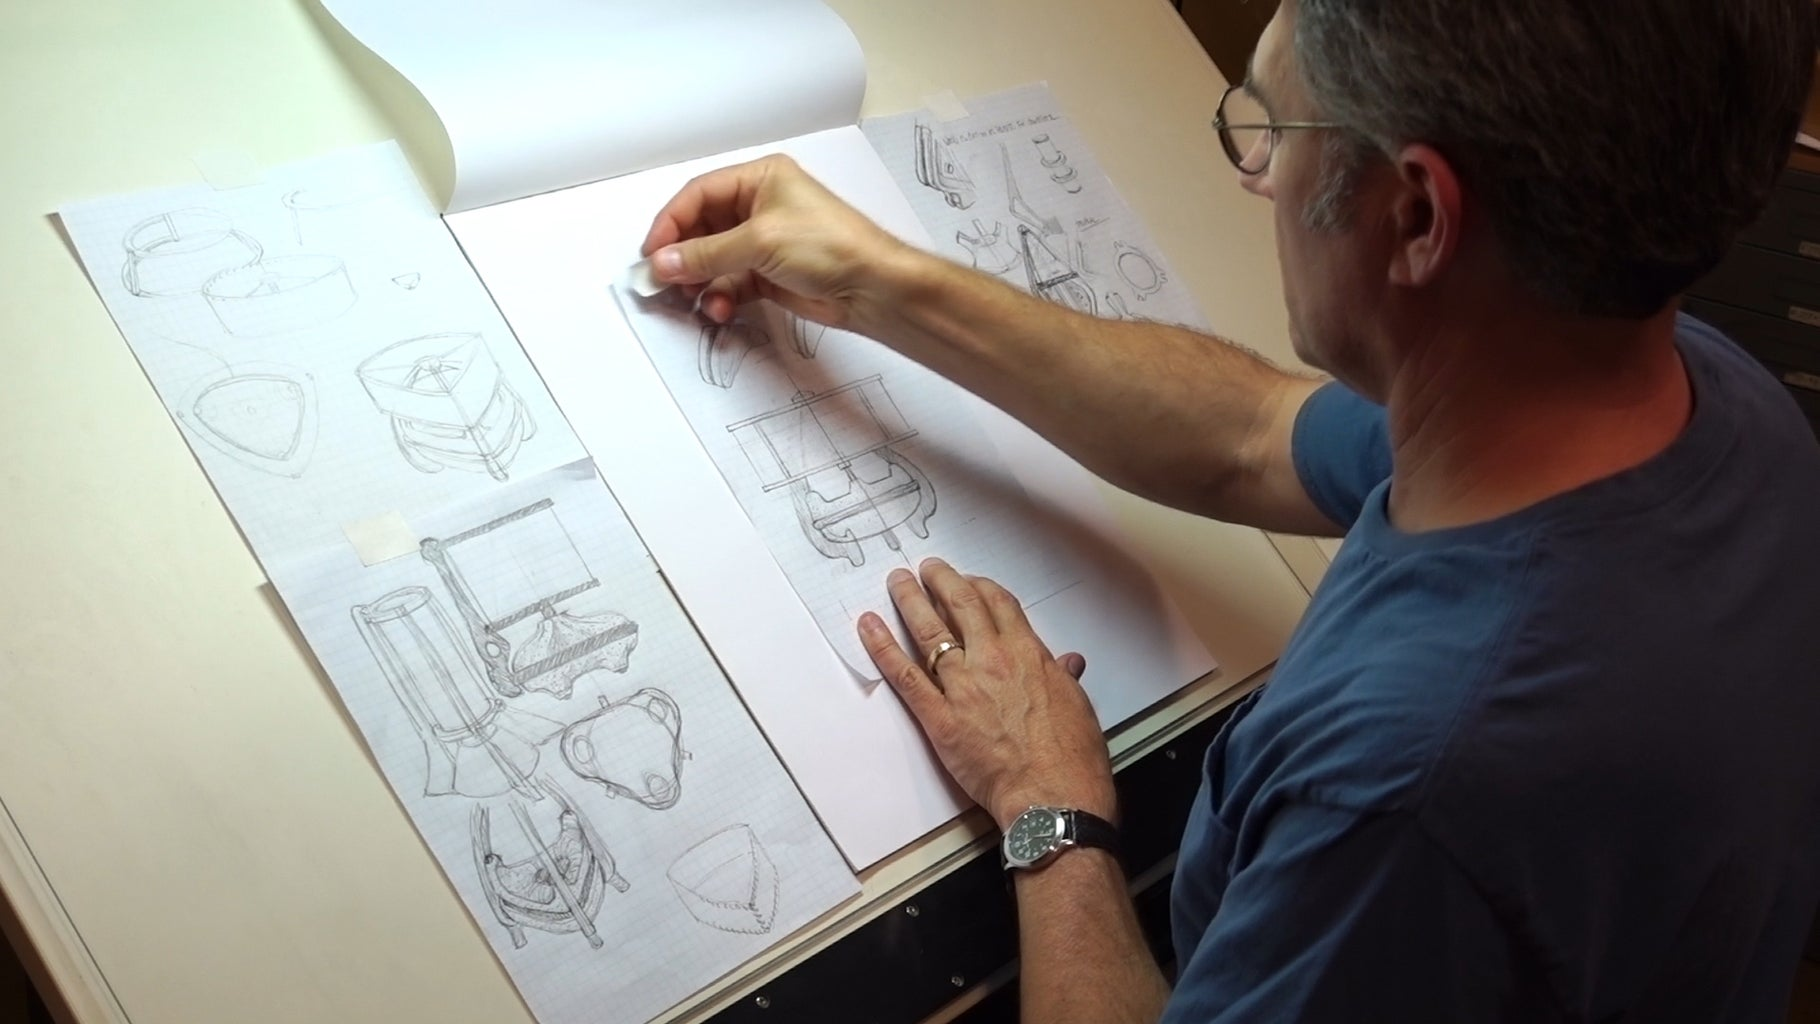 The Sketches